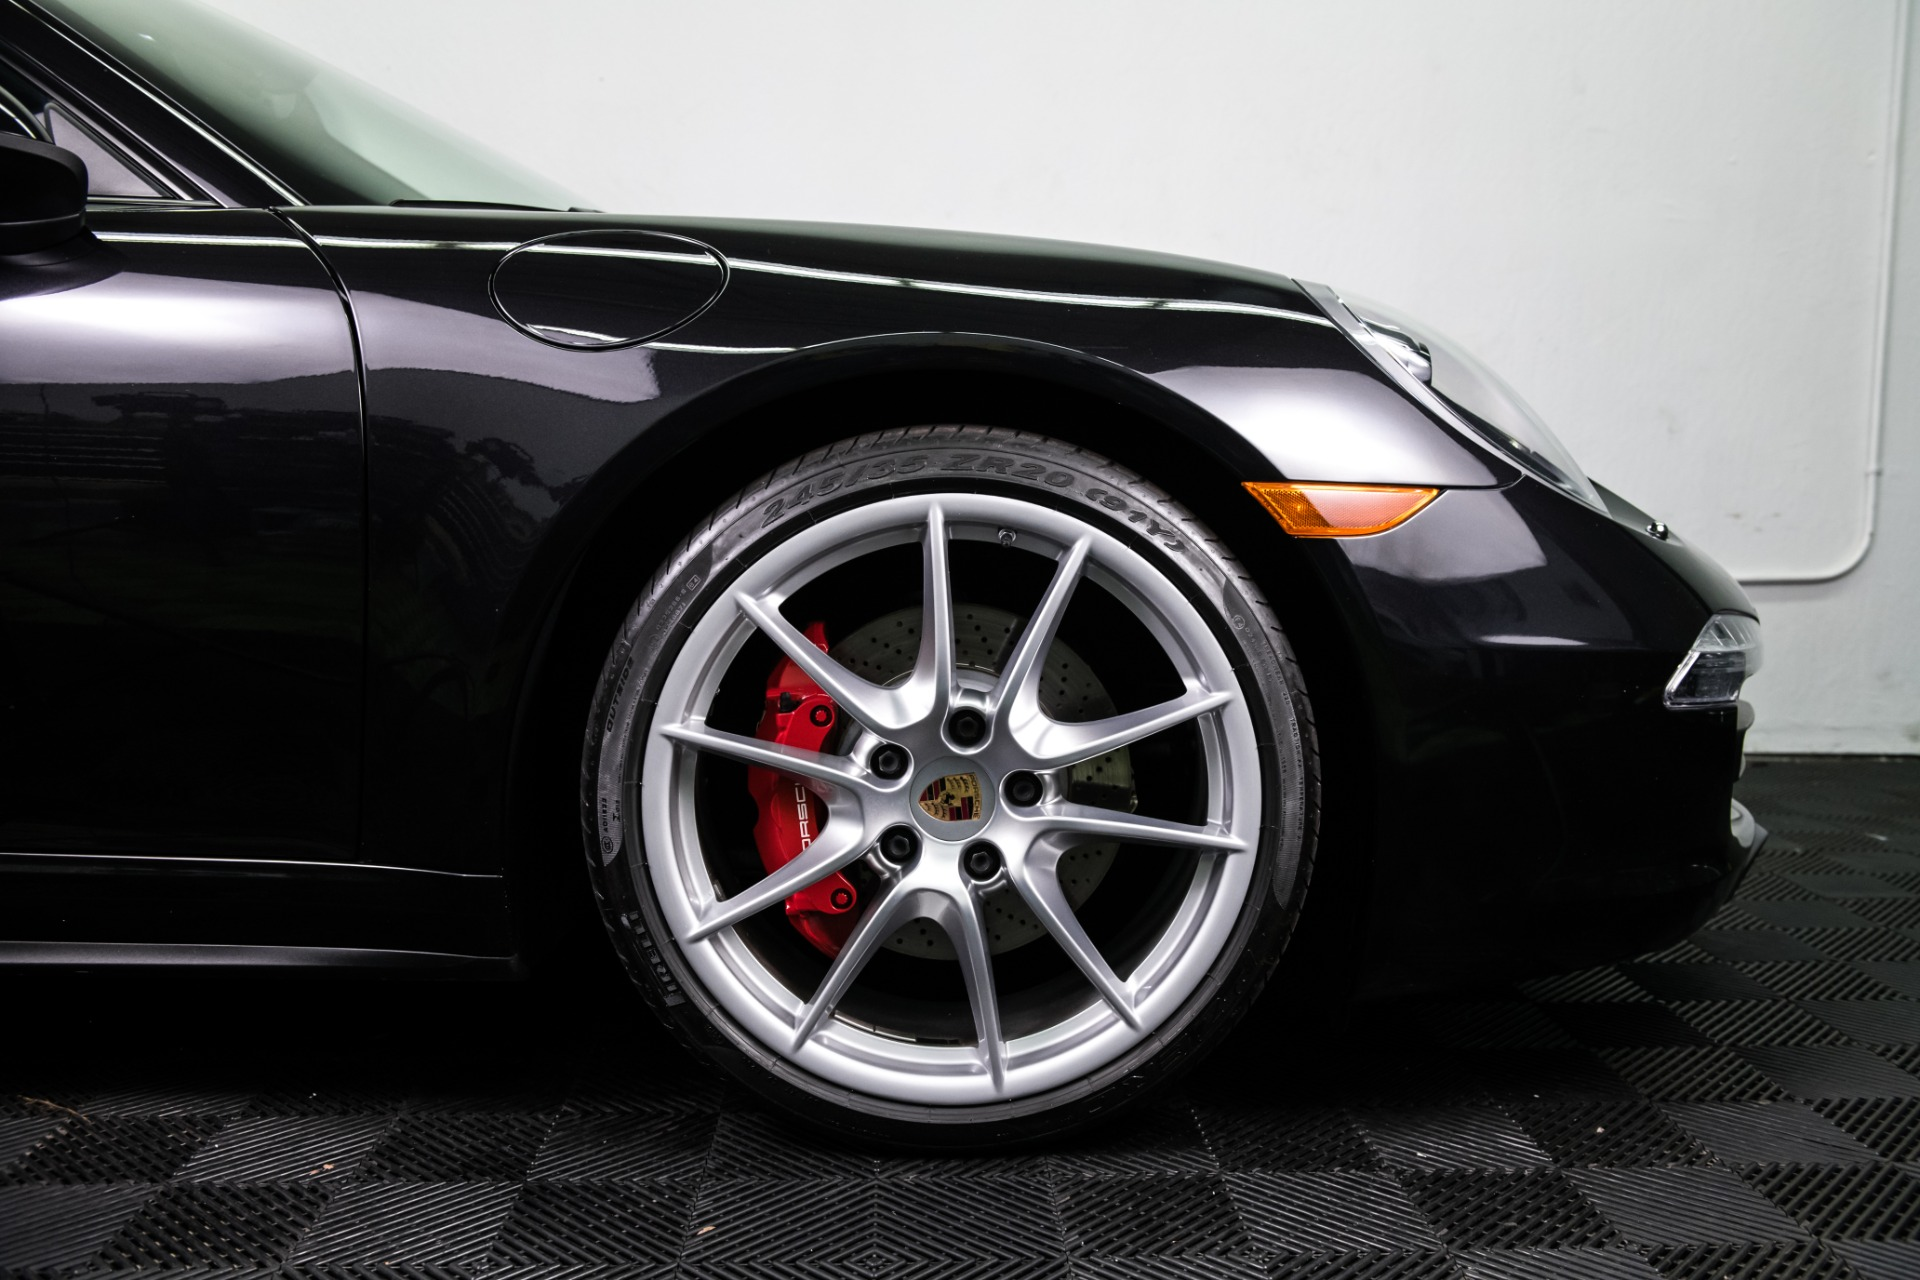 Used 2013 Porsche 911 Carrera 4S Used 2013 Porsche 911 Carrera 4S for sale Sold at Response Motors in Mountain View CA 4